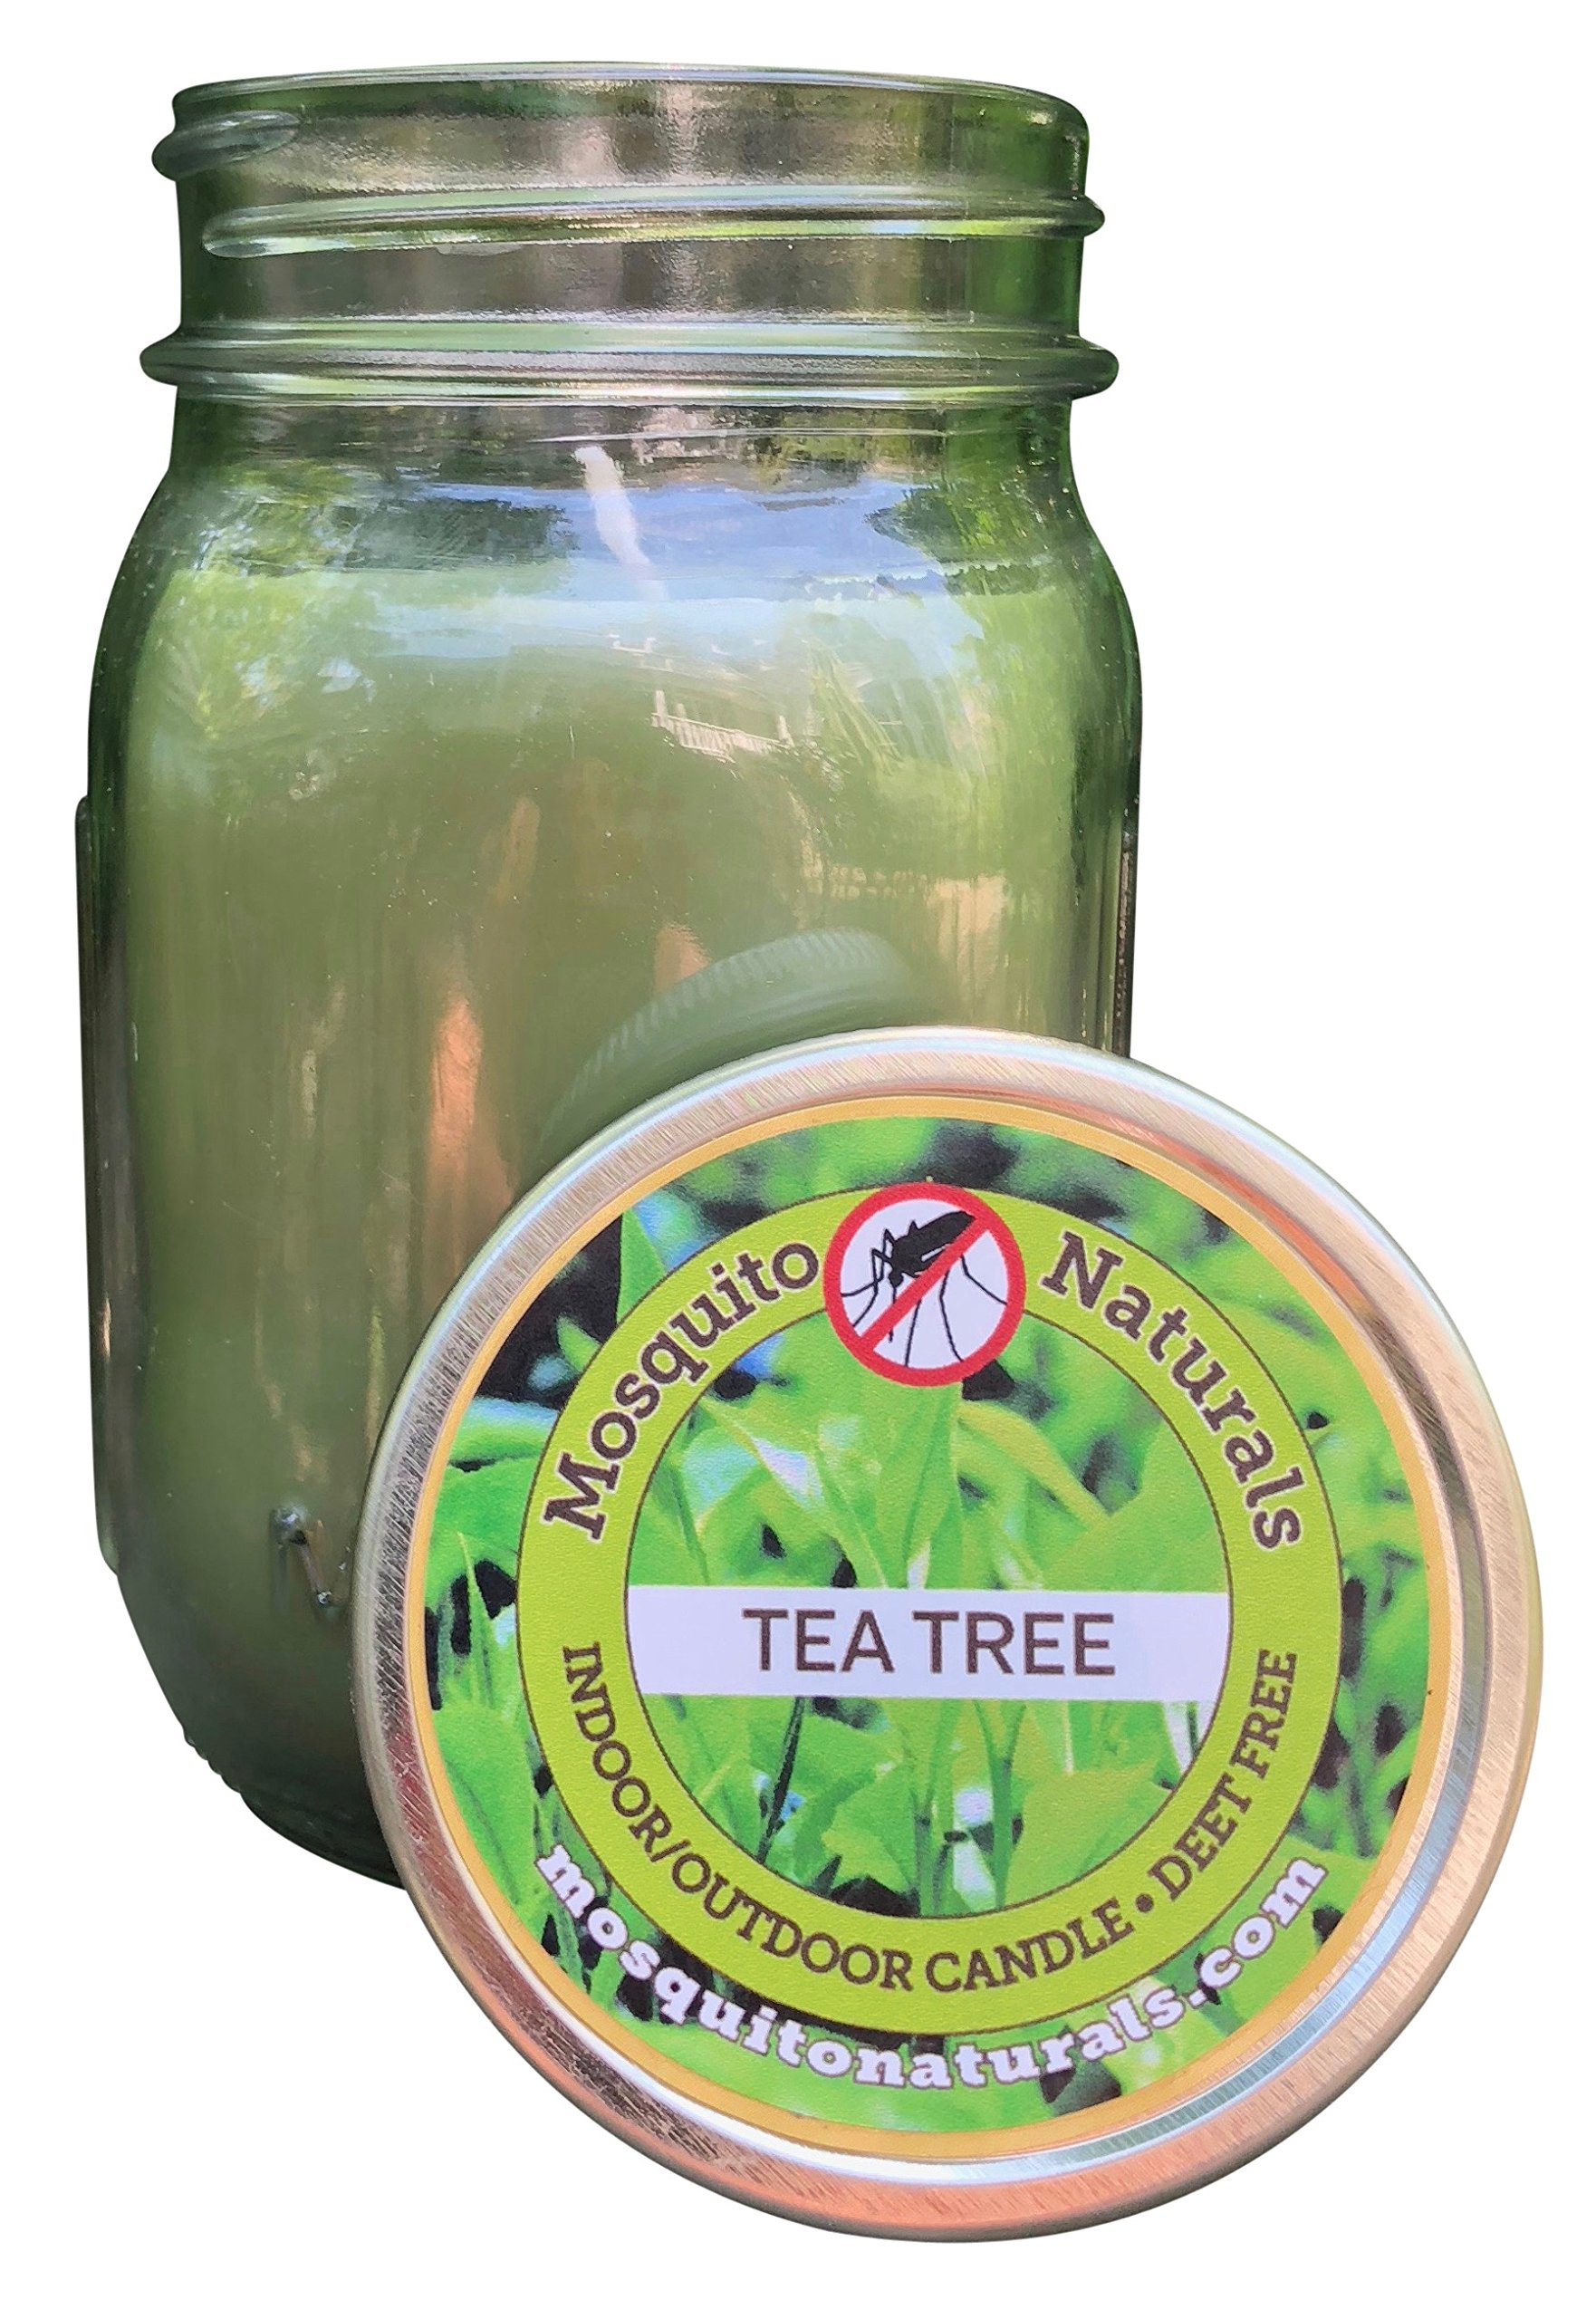 Natural Tea Tree Mosquito Repellent Candle Indoor/Outdoor - 88 Hour Burn - Naturally Repels Insects with Essential Oils, Citronella Soy, Mason Jar, Made in USA